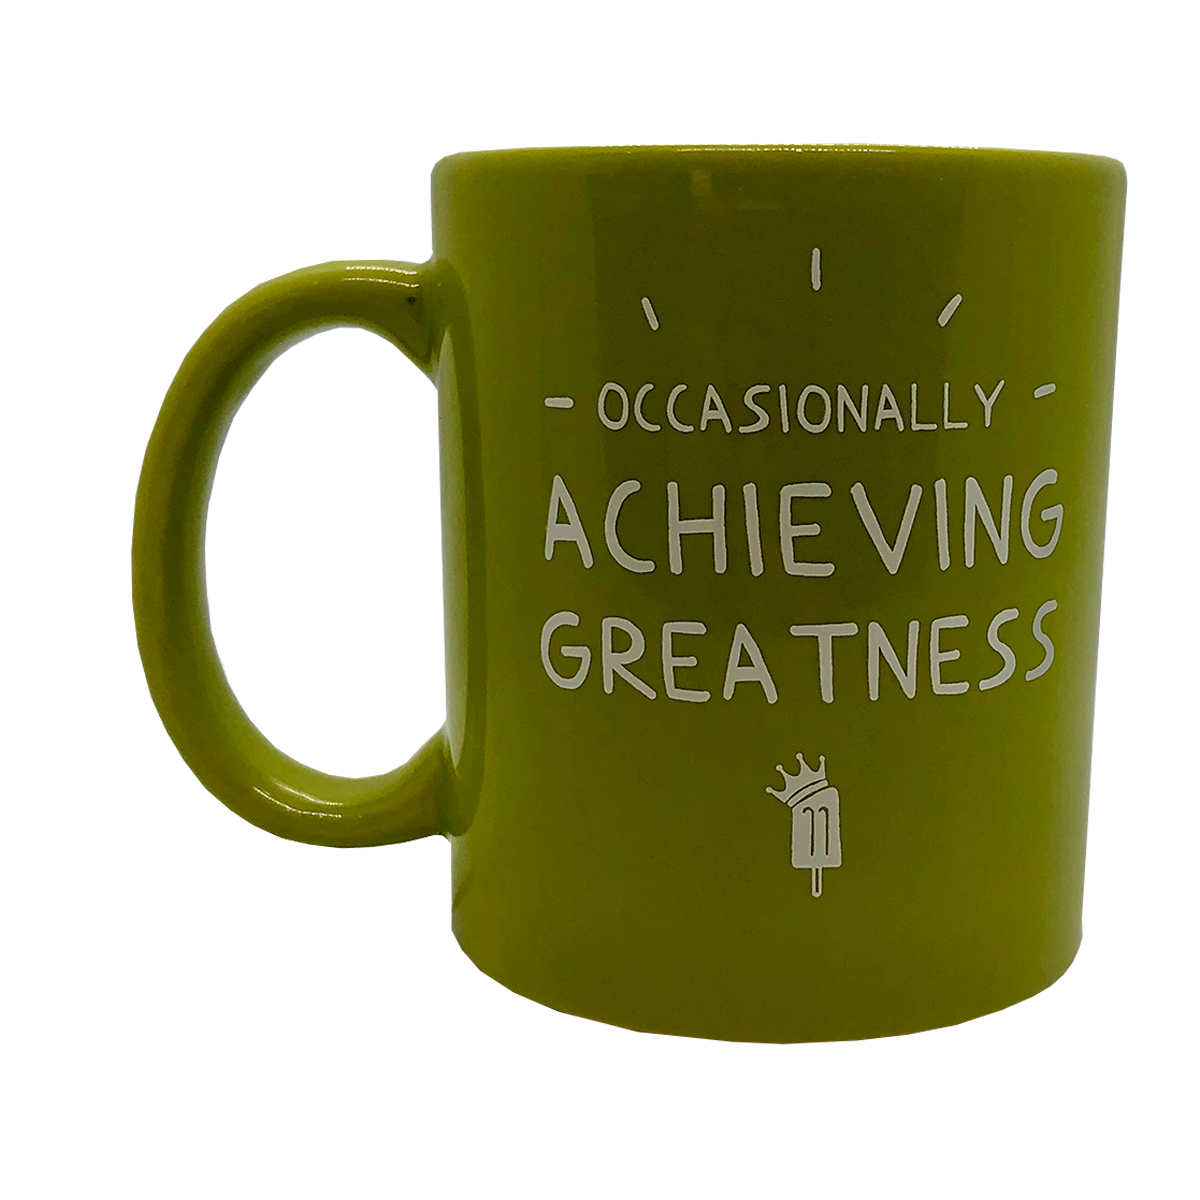 King of Pops Green Mug - 'Occasionally Achieving Greatness'